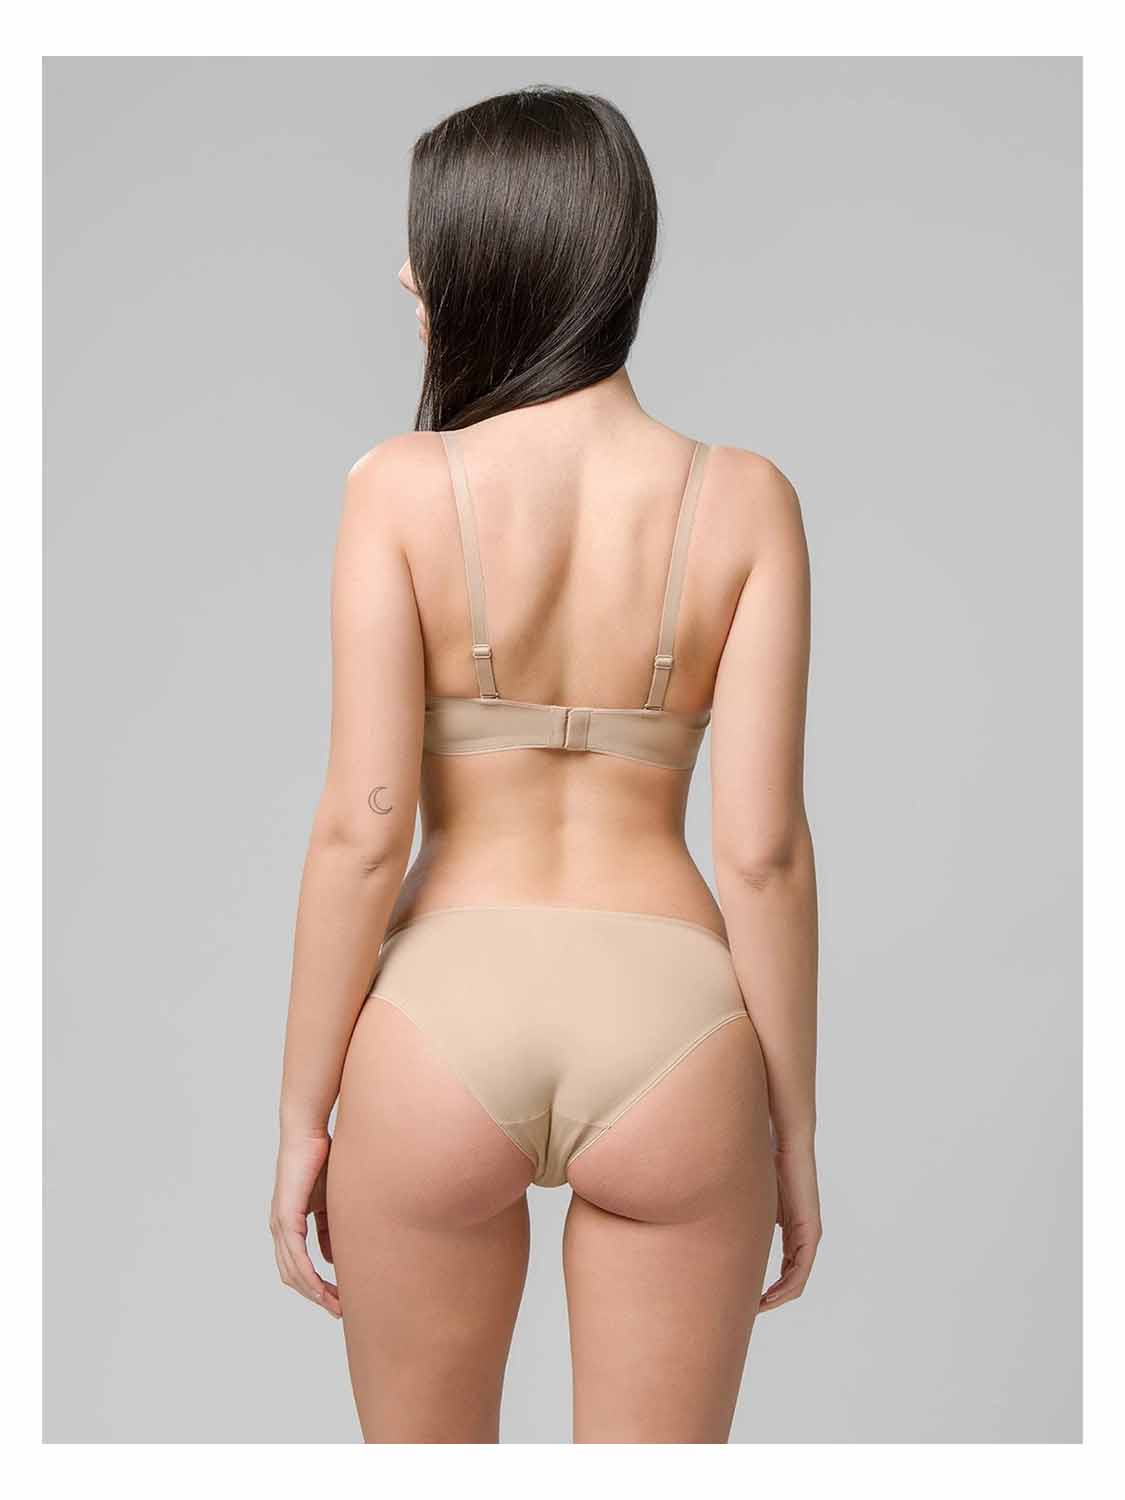 LUNA MIRACLE ONE MOLDED PUSH-UP 1809-NEW - ΜΠΕΖ – CUP B 2